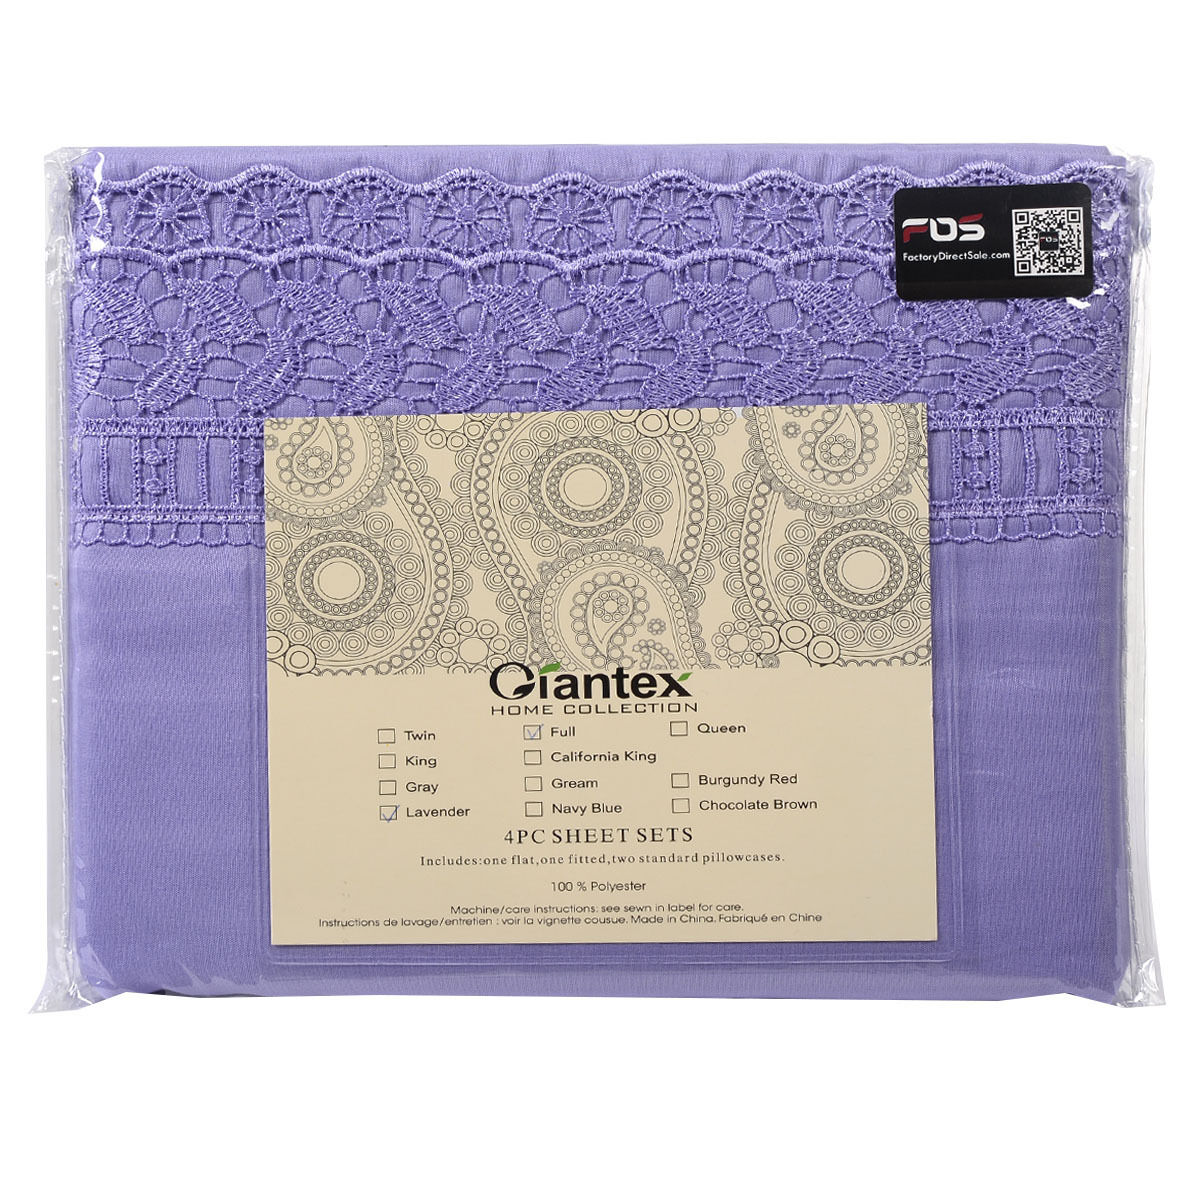 1600-Count-4-Piece-Bed-Sheet-Set-Deep-Pocket-6-Color-5-Size-Chemical-Lace-New thumbnail 26